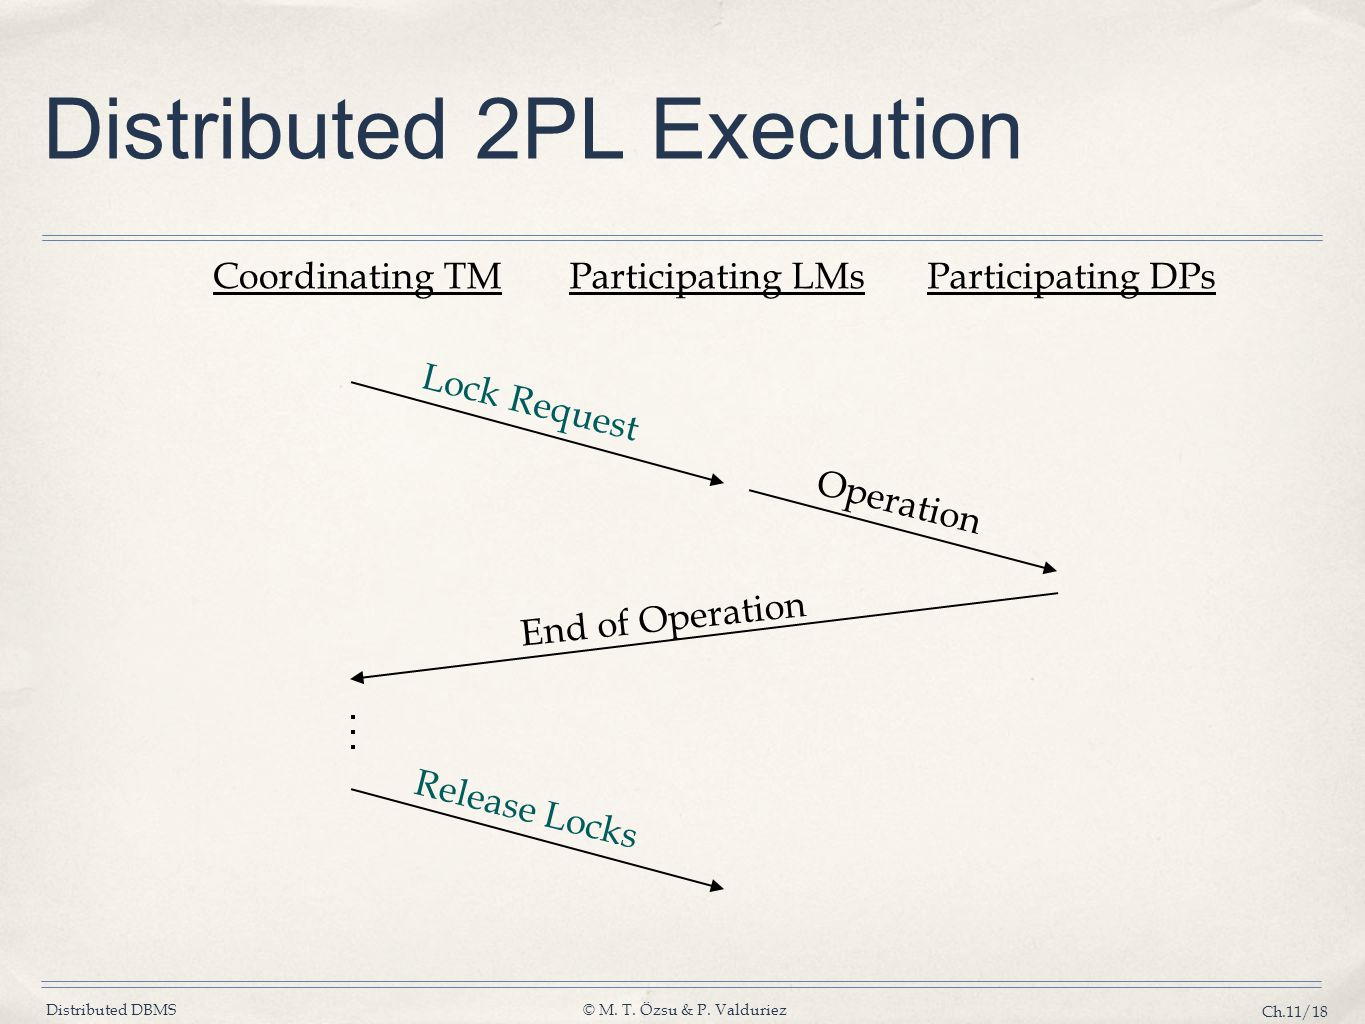 Distributed 2PL Execution